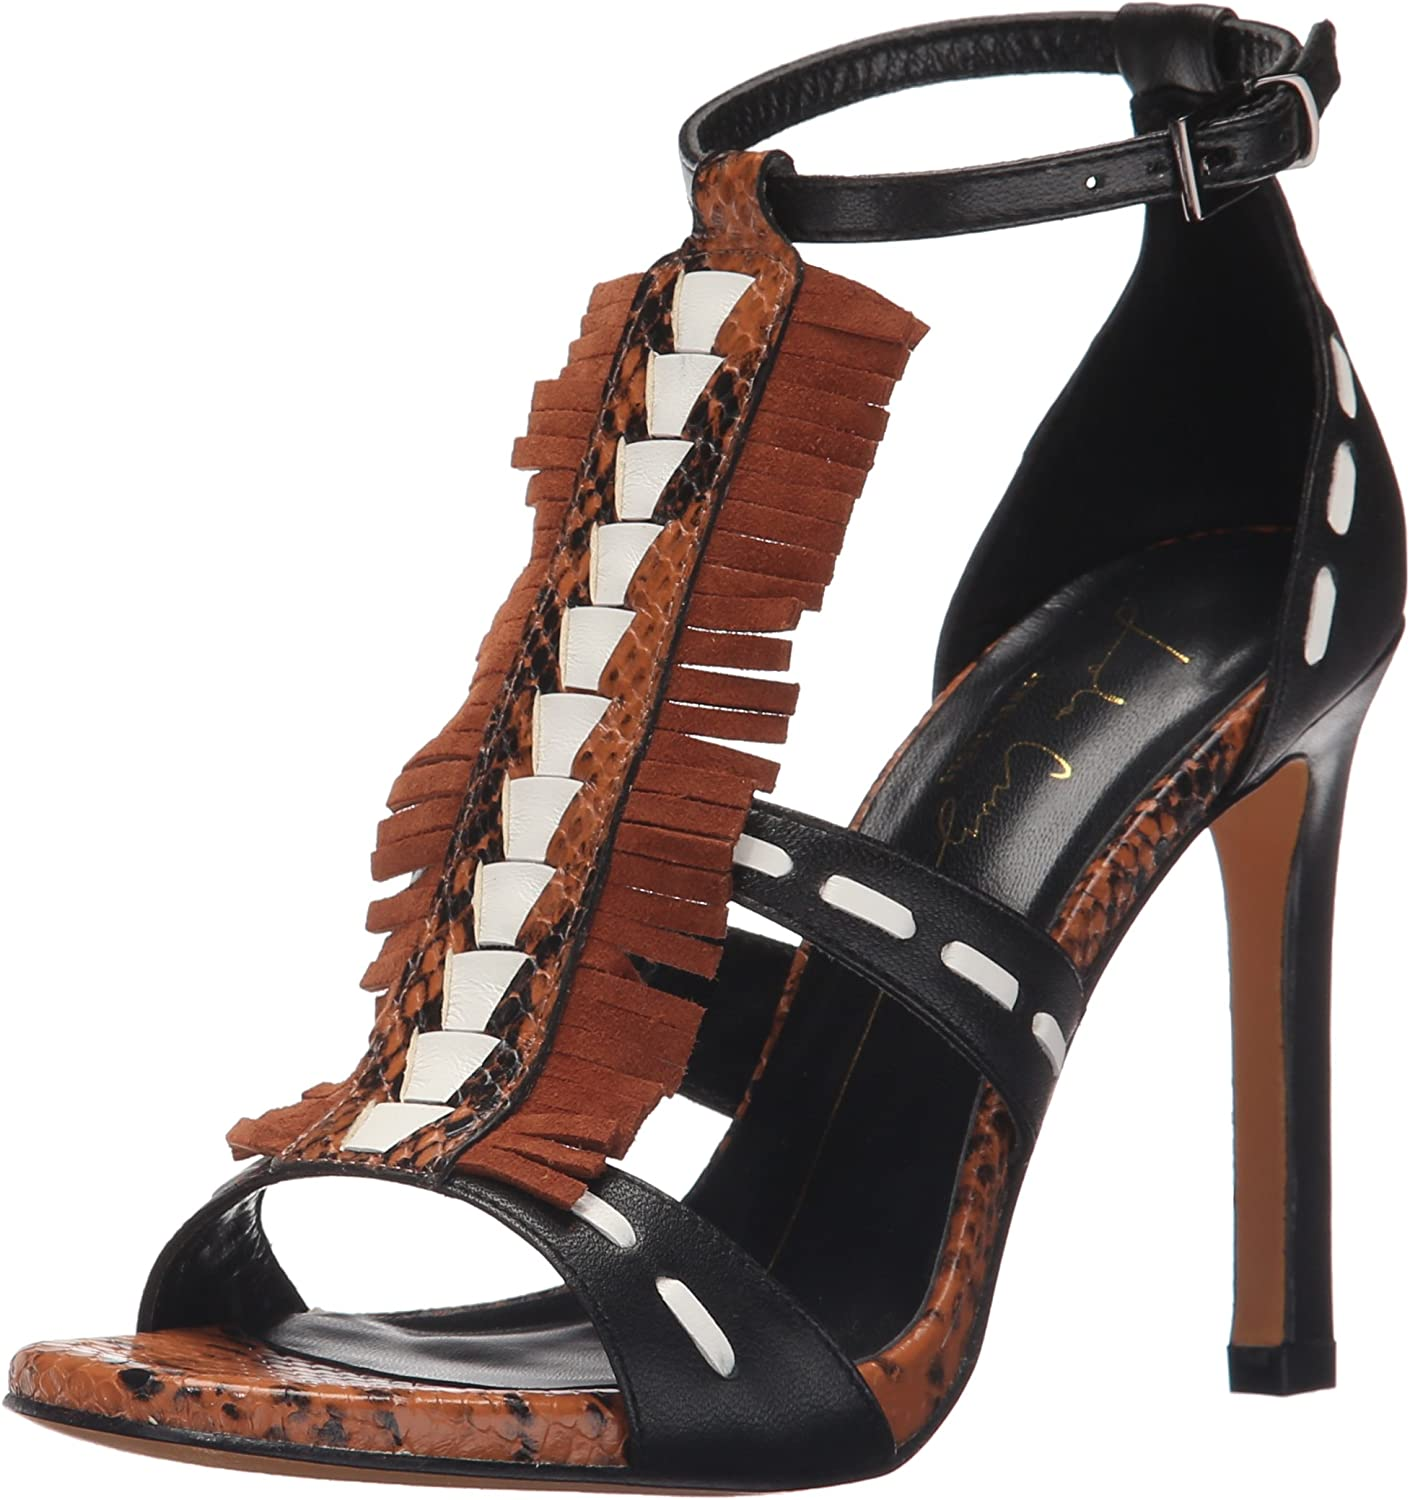 Lola Cruz Womens High Heel Fringe Sandal D'Orsay Pump